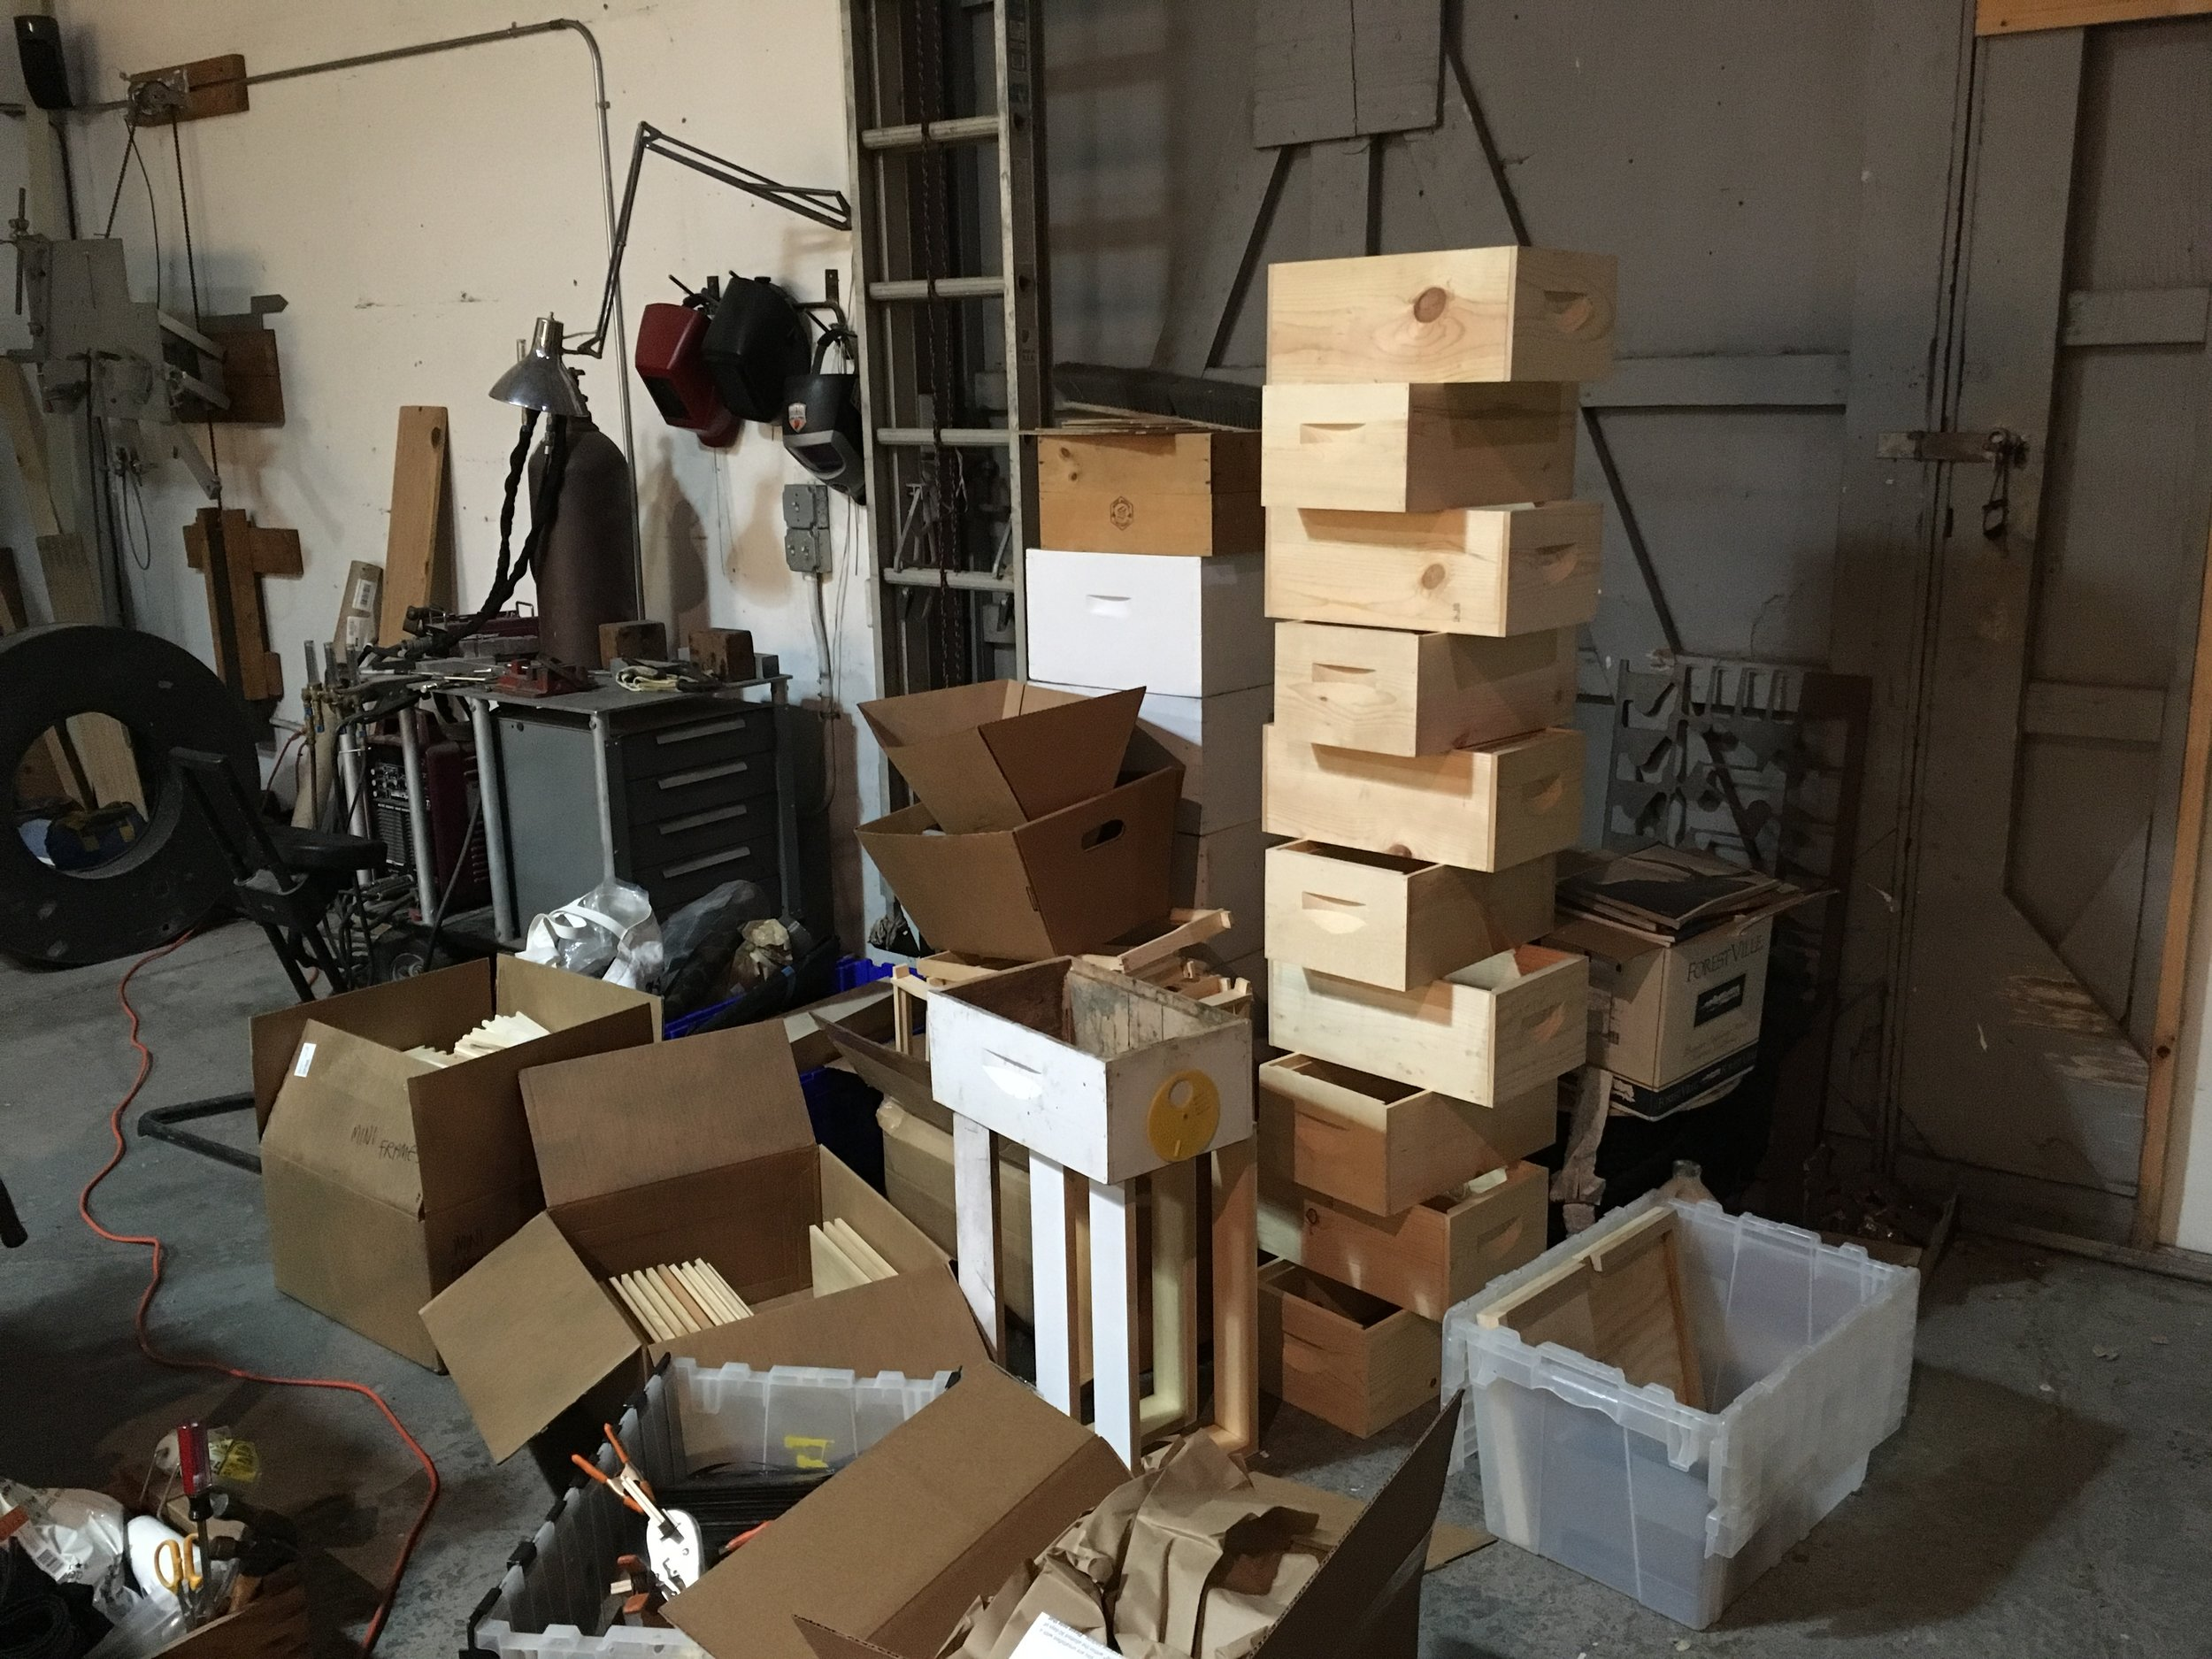 Ordered chaos as I receive shipments, make modifications and build equipment.